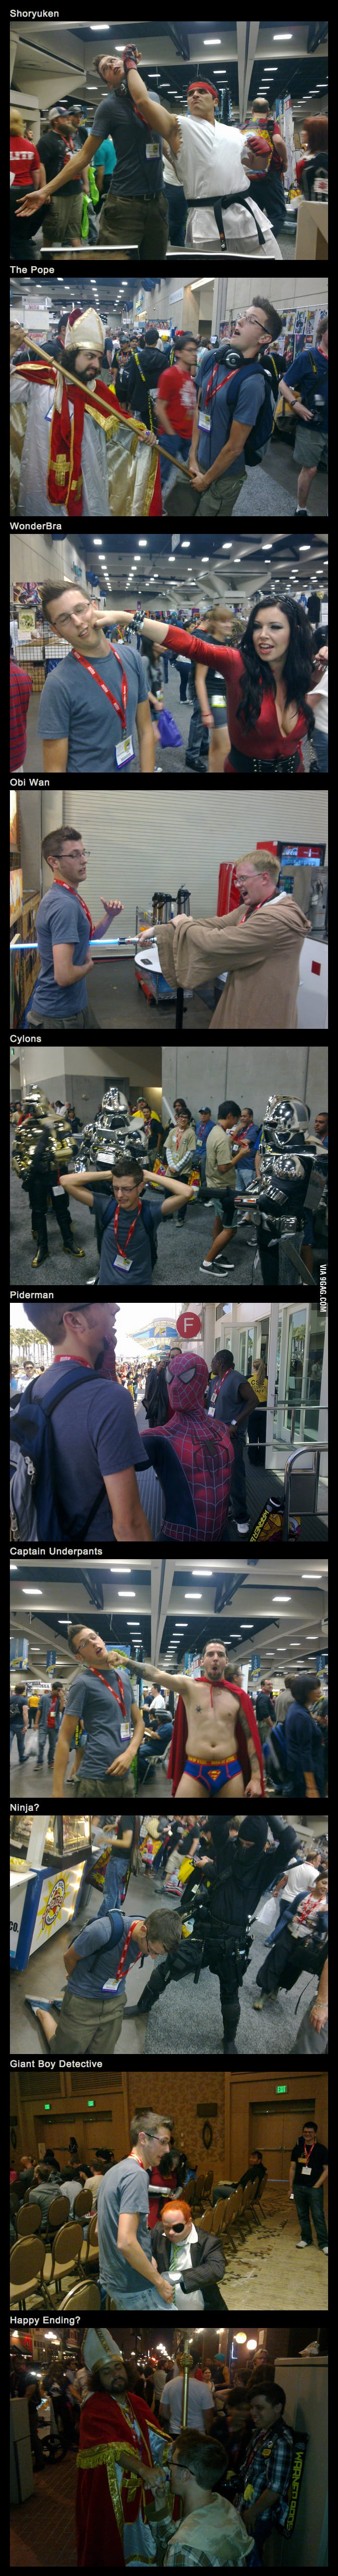 Getting hurt at Comic Con...